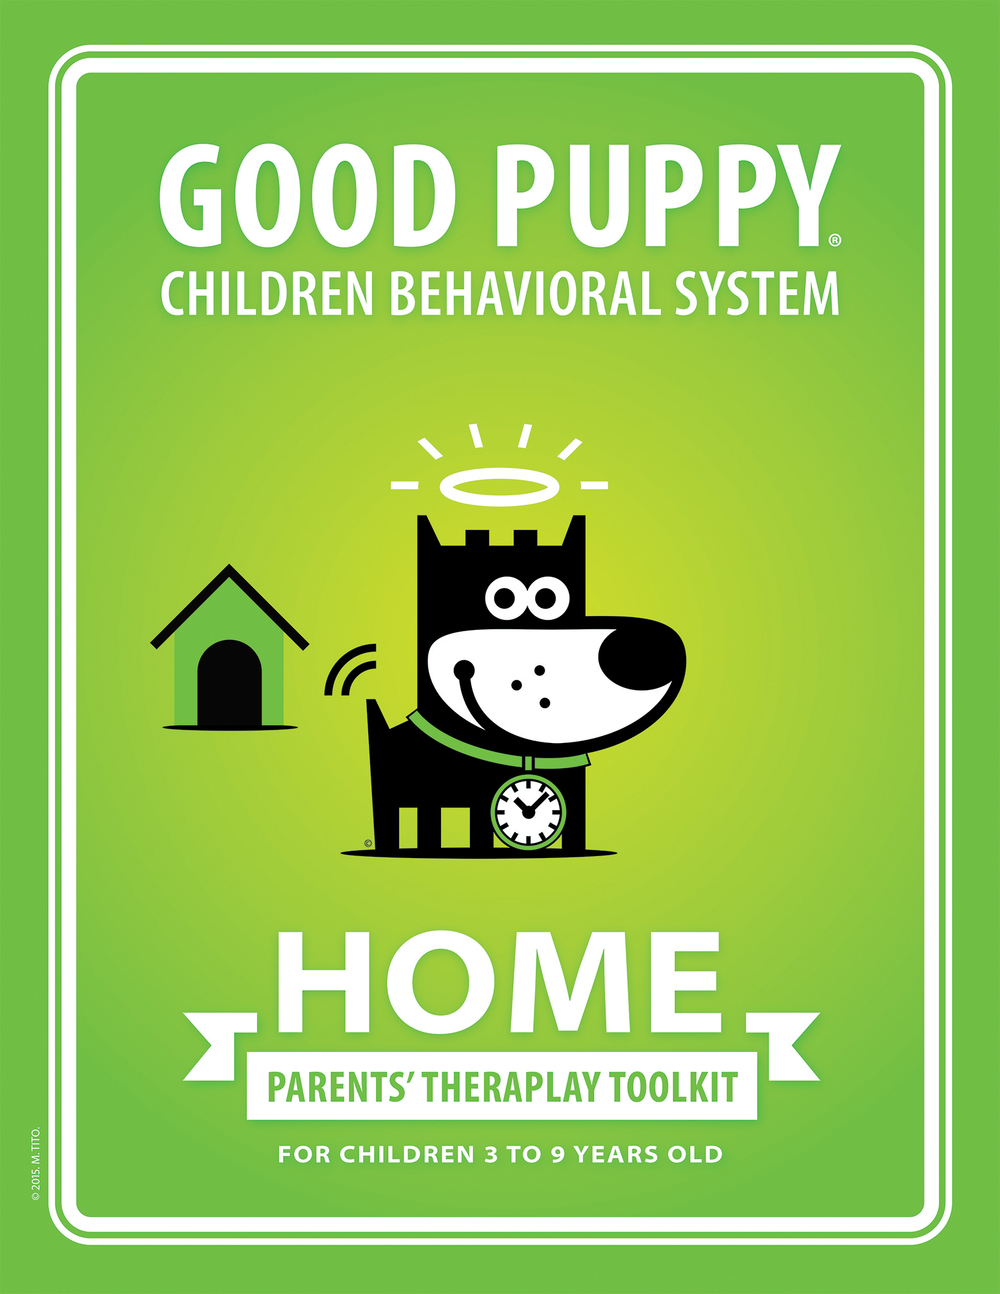 "HOME   GOOD PUPPY® Children Behavioral System    Created by Marina Tito & Lorenzo Di Alessandro    Recommended for Parents of Children Ages 3 - 9   Publisher:  Good Puppy  Website:  goodpuppy.com  Email: books@goodpuppy.com  Publication Date: July, 2015 Language: English   Softcover edition   ISBN-13: 978-1-940692-32-6 ISBN-10: 1940692326  8.5"" x 11"" 70 pages   Printable PDF edition   ISBN-13: 978-1-940692-35-7 ISBN-10: 1940692357  8.5"" x 11"" 70 pages"